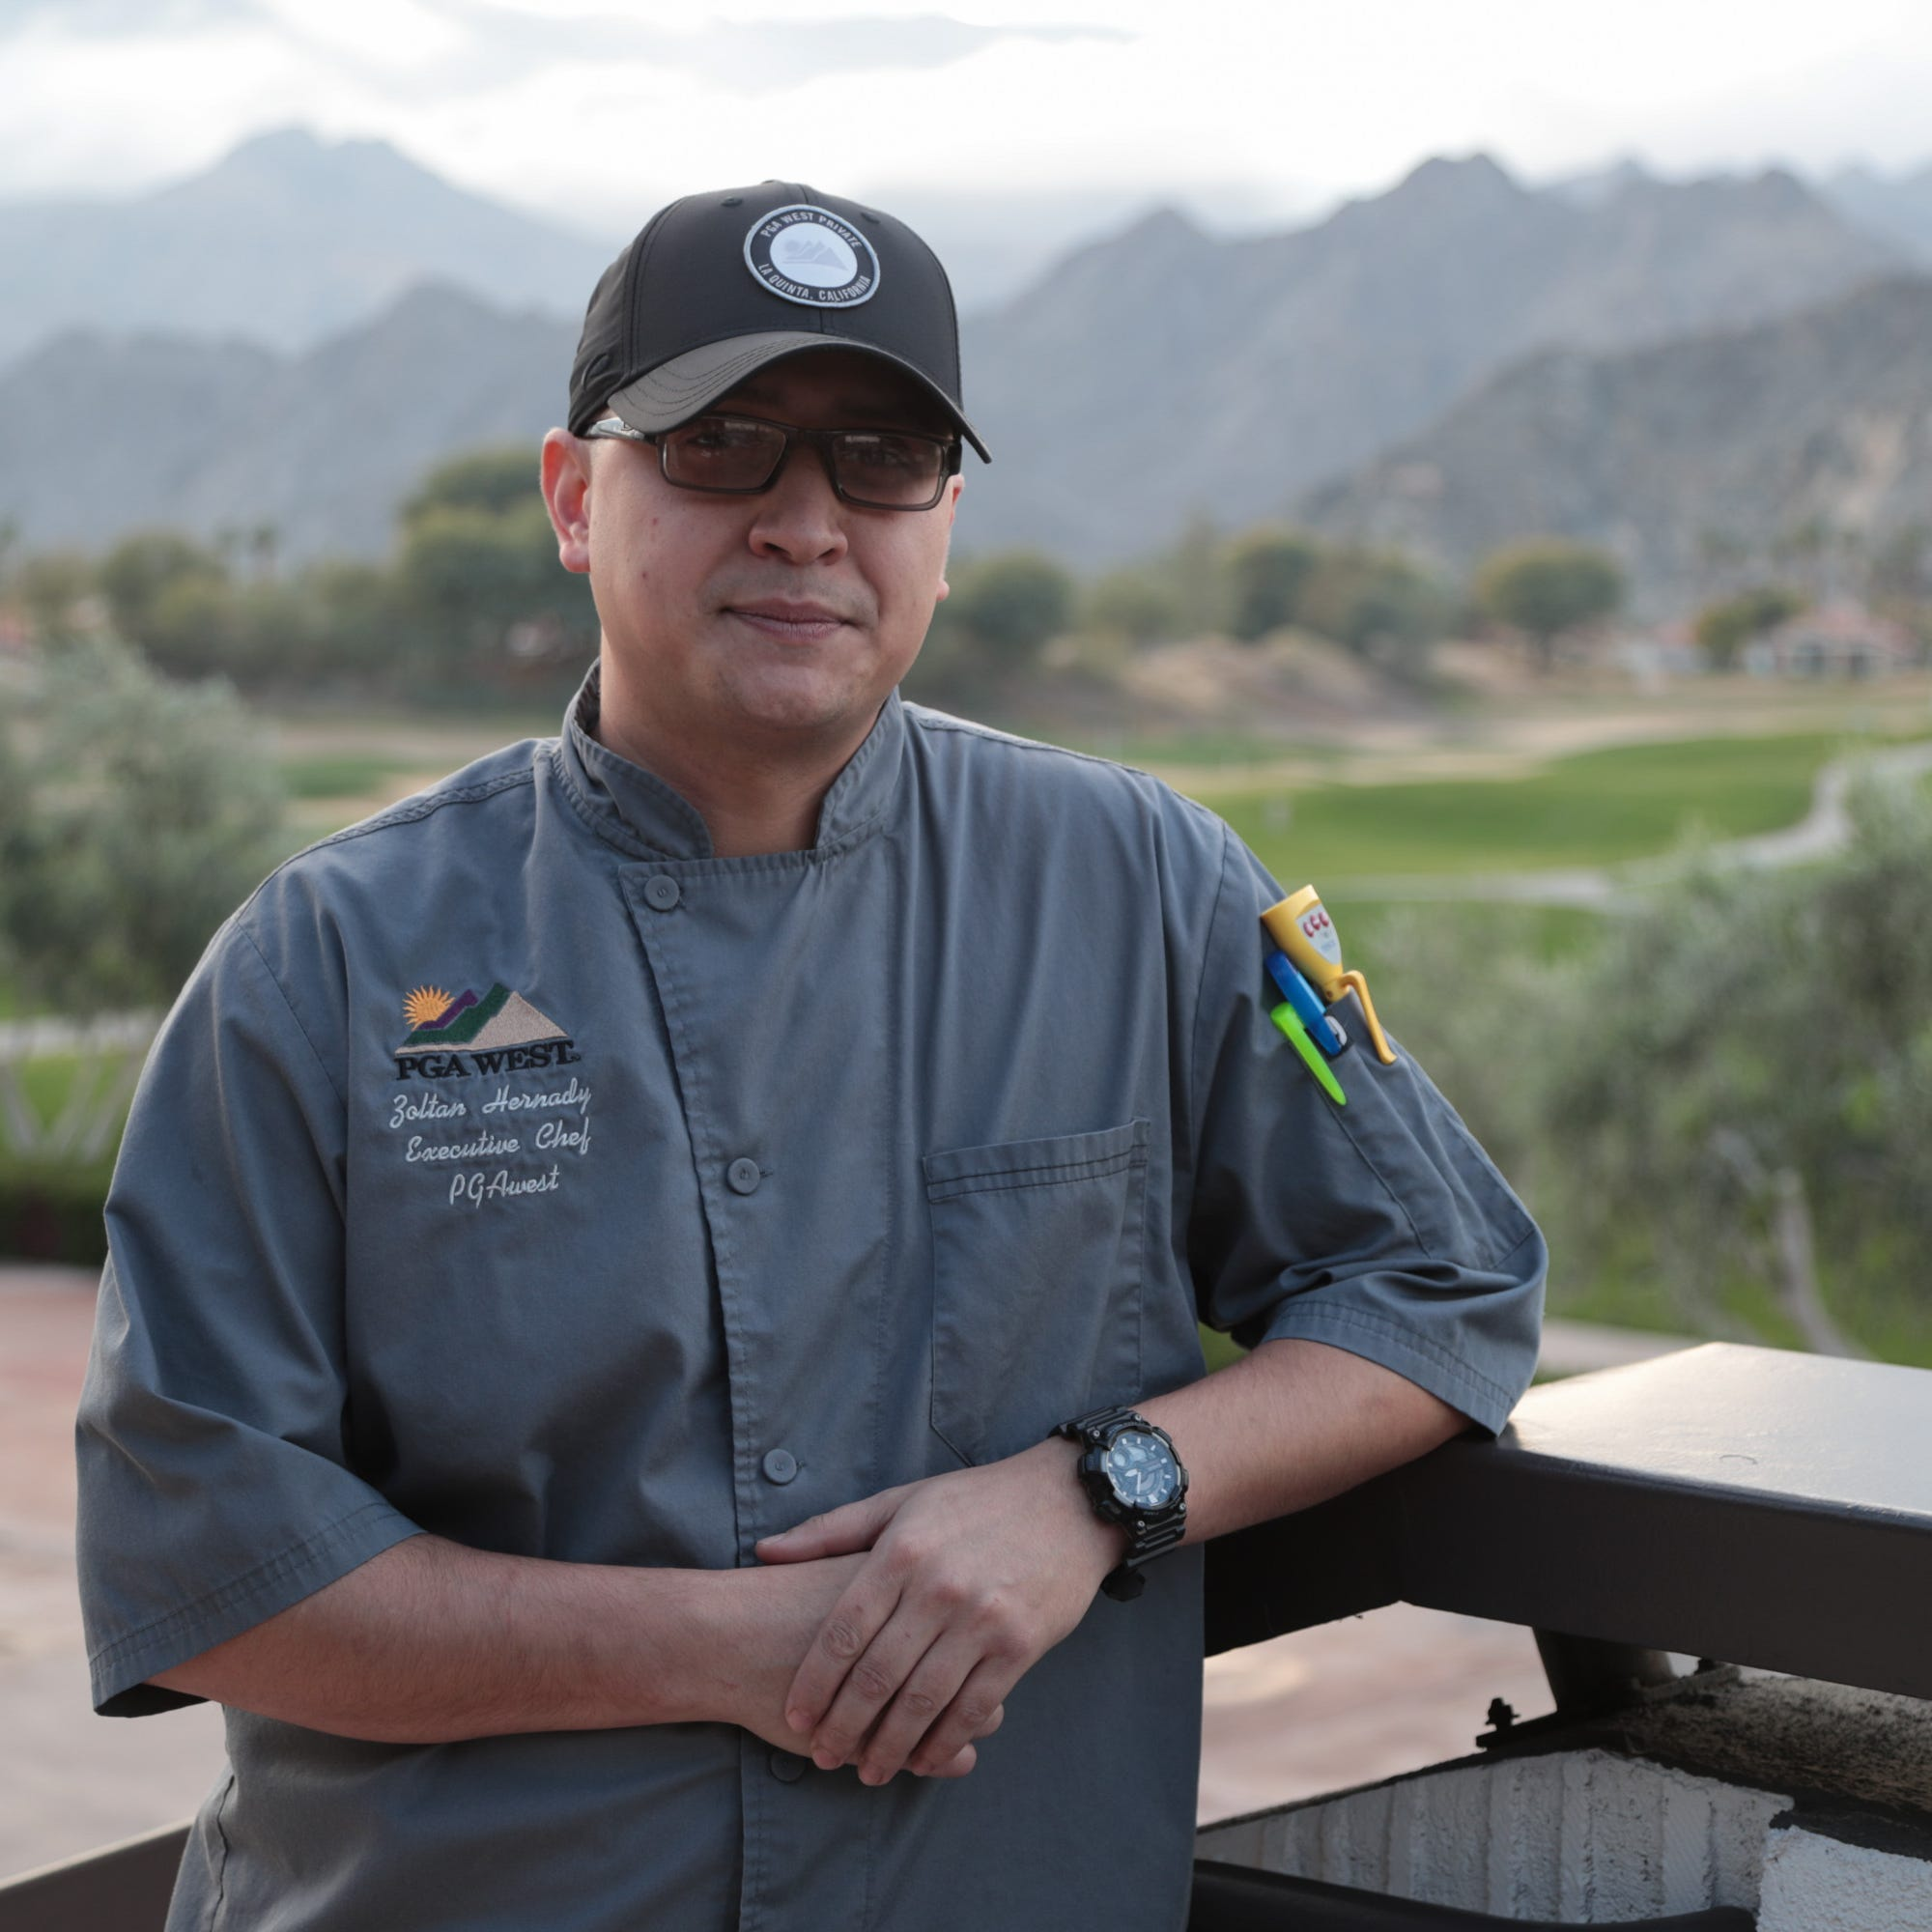 From Chinese-inspired jerky to strawberry salads, nutrition key for Desert Classic golfers